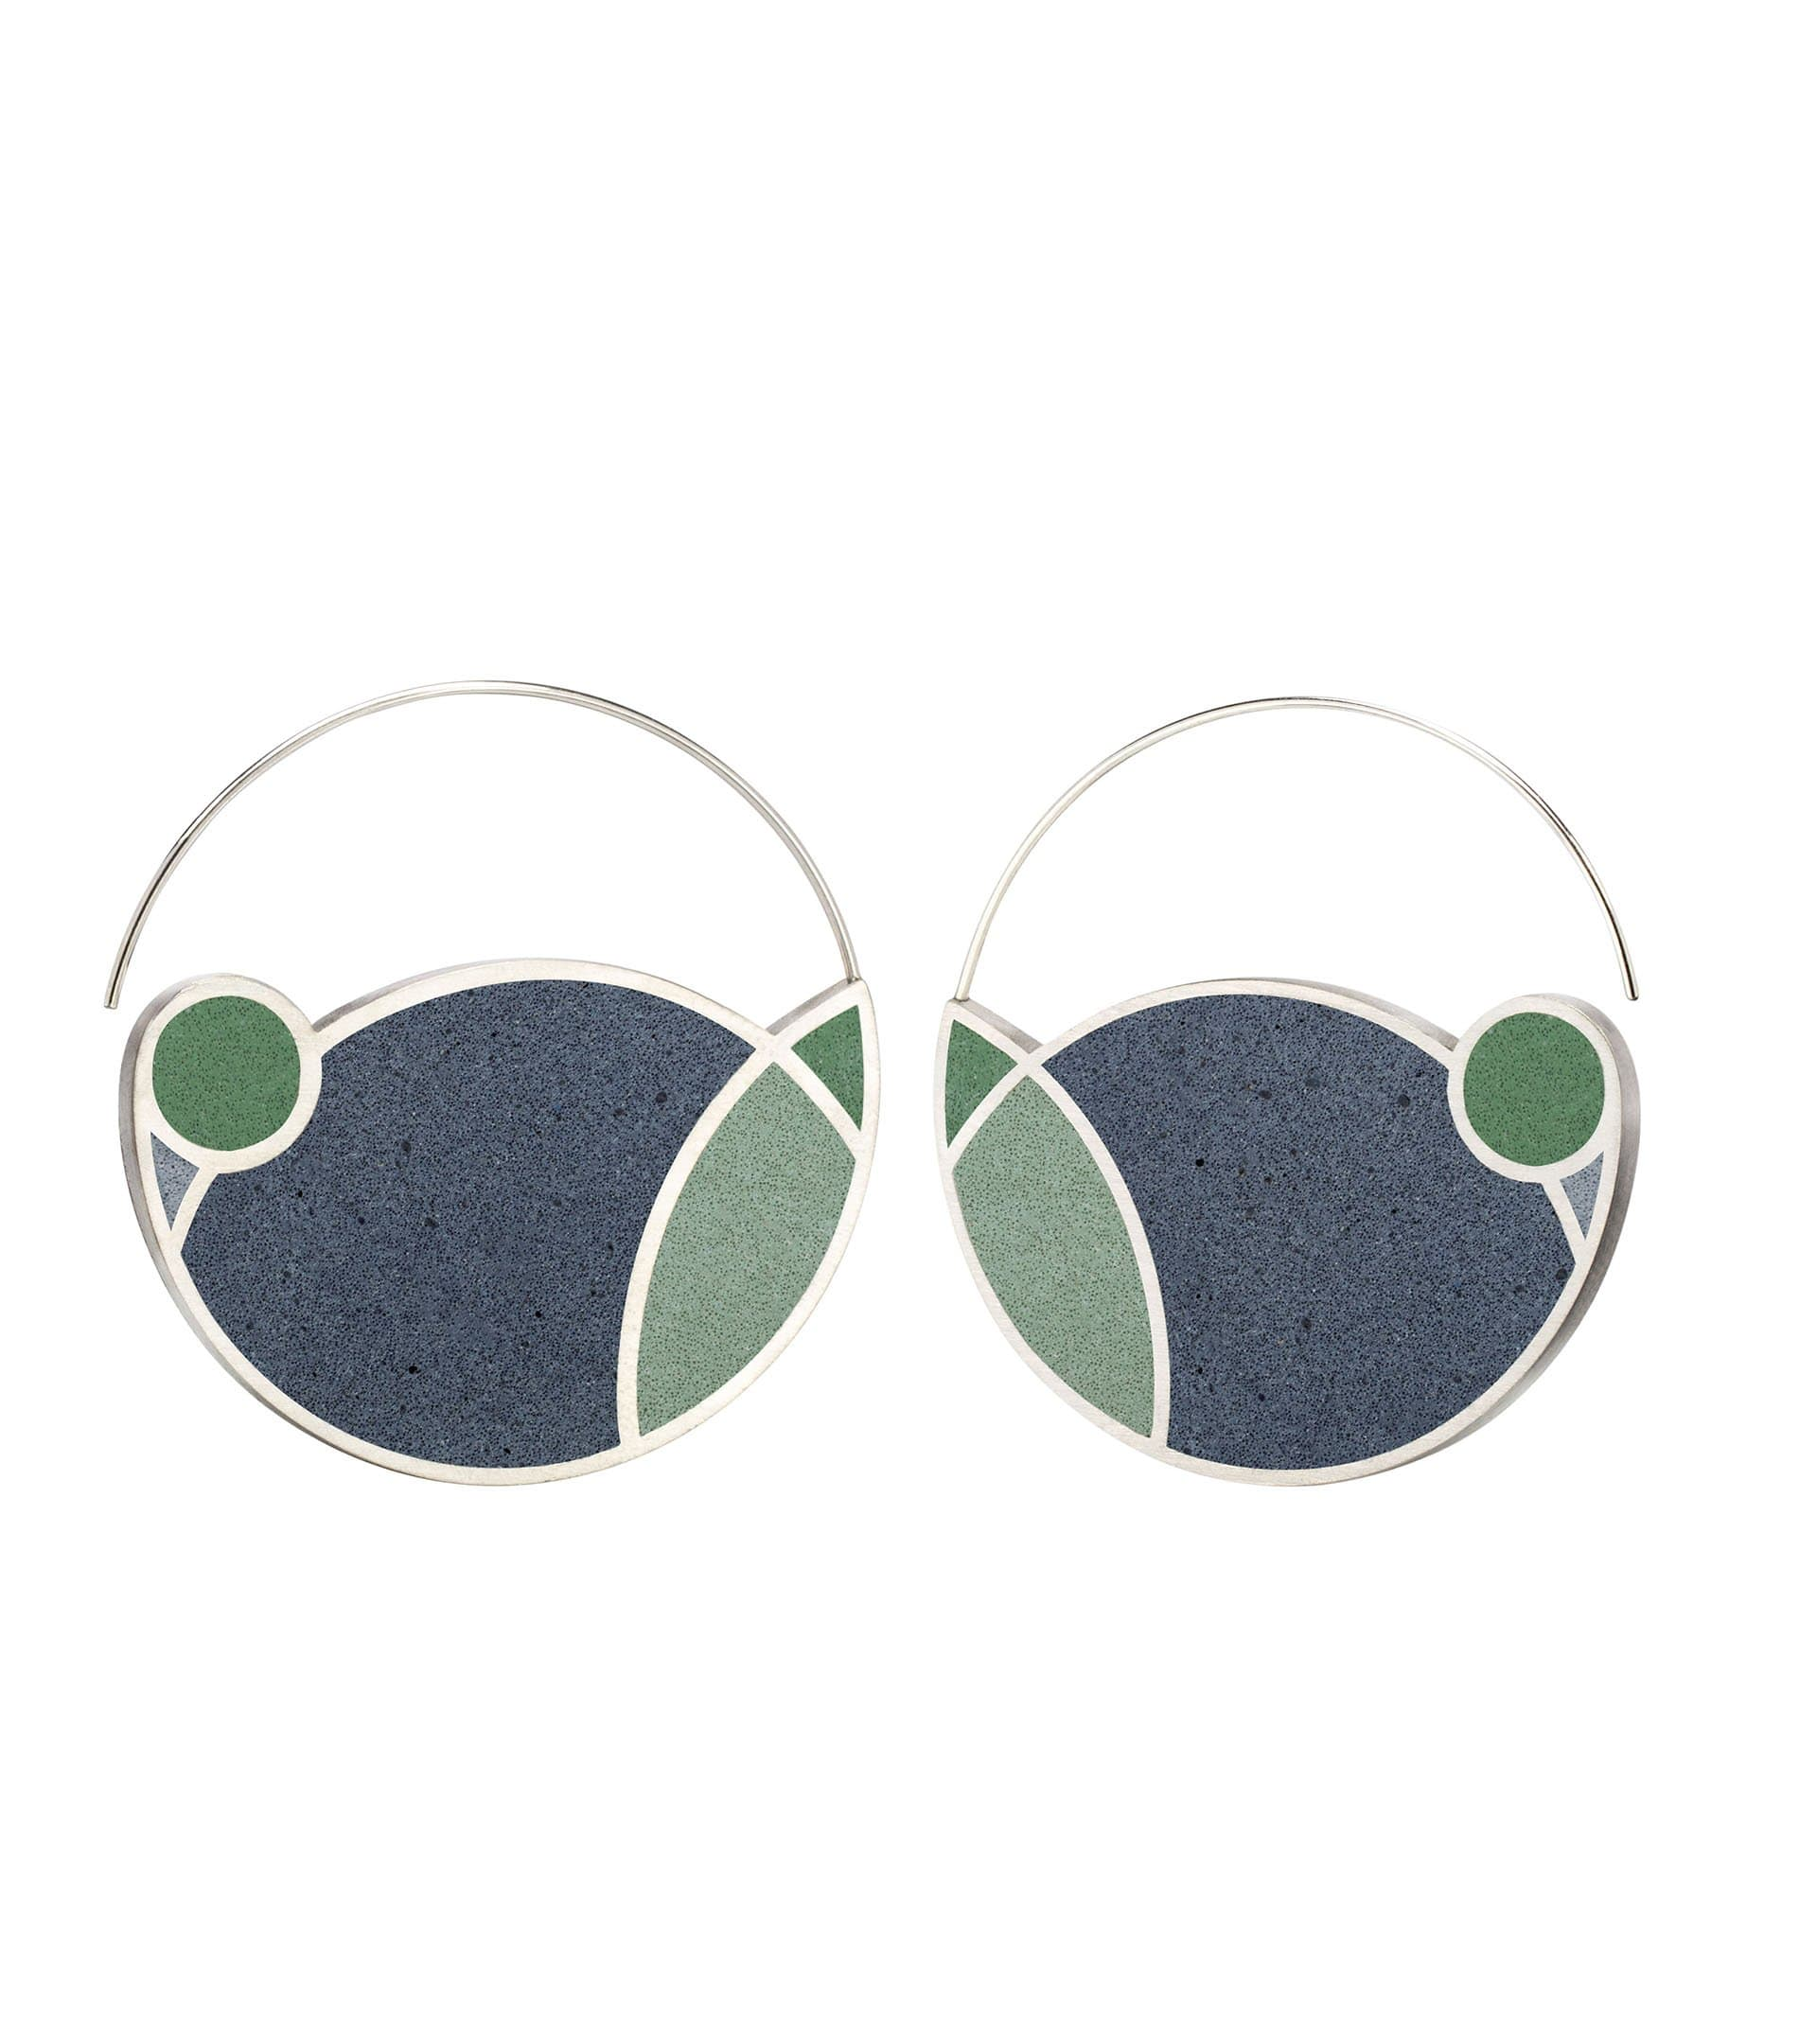 Konzuk Earrings Mix 2 - Indigo Blue March Balloons Concrete Hoop Earrings 1